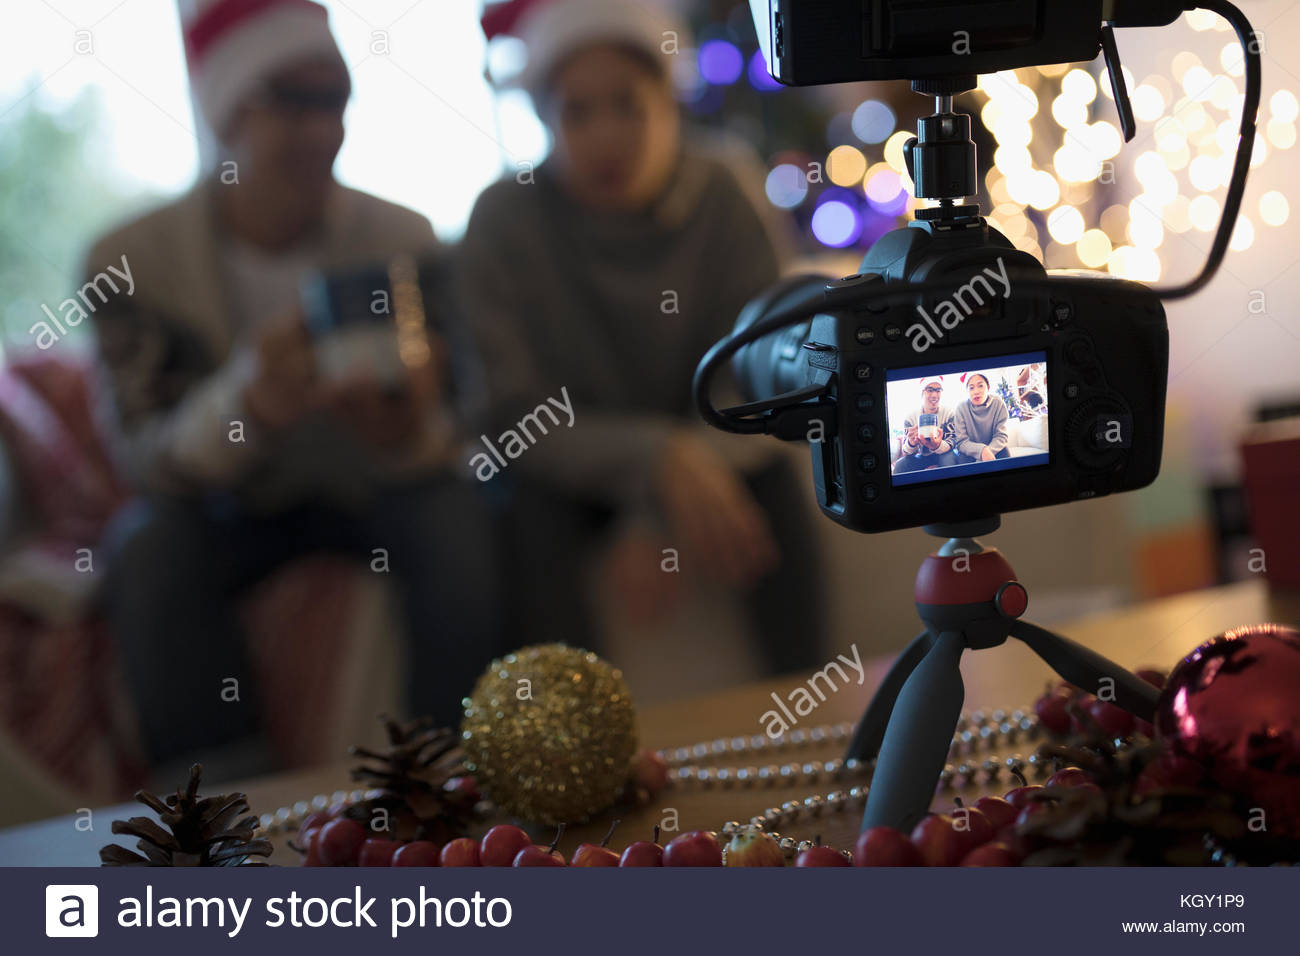 View through camera viewfinder of couple wearing Santa hats in Christmas living room - Stock Image